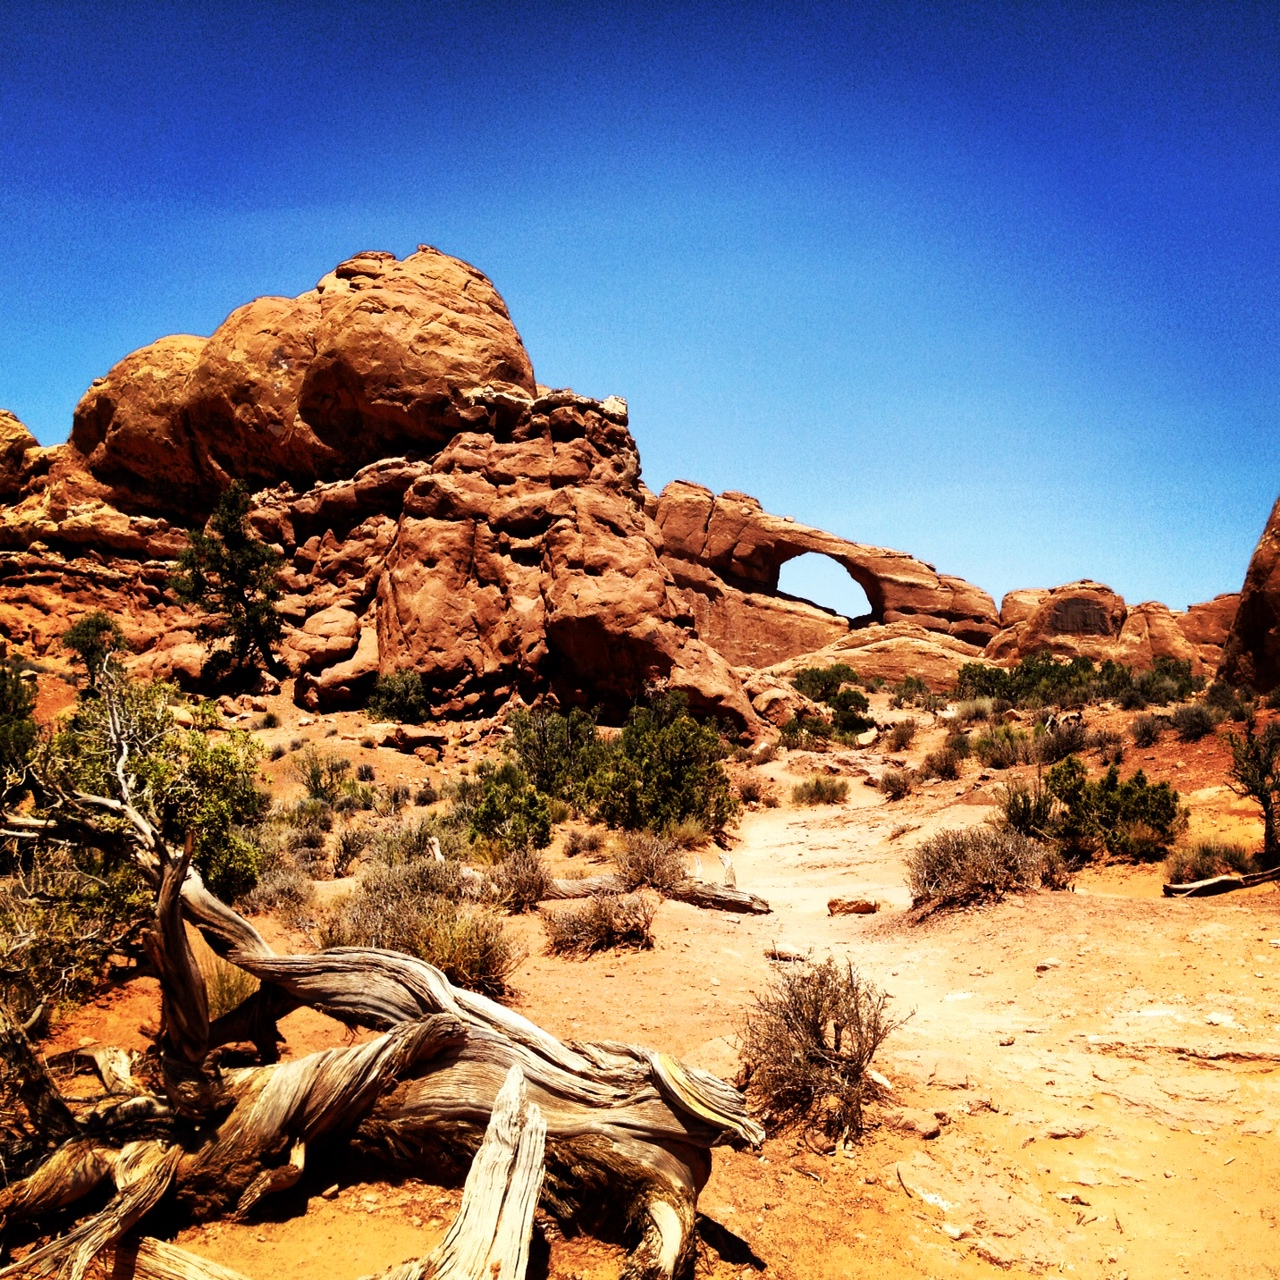 Where are all the arches in Arches National Park?